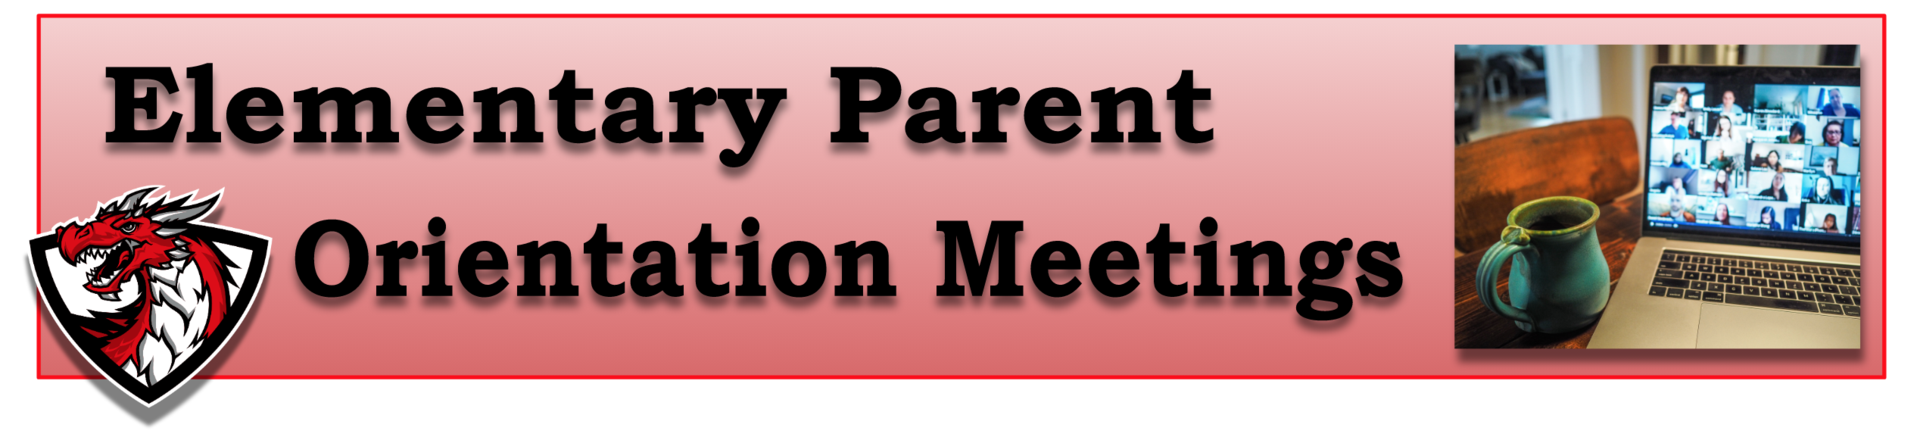 Web Page Title: Elementary Parent Orientation Meetings